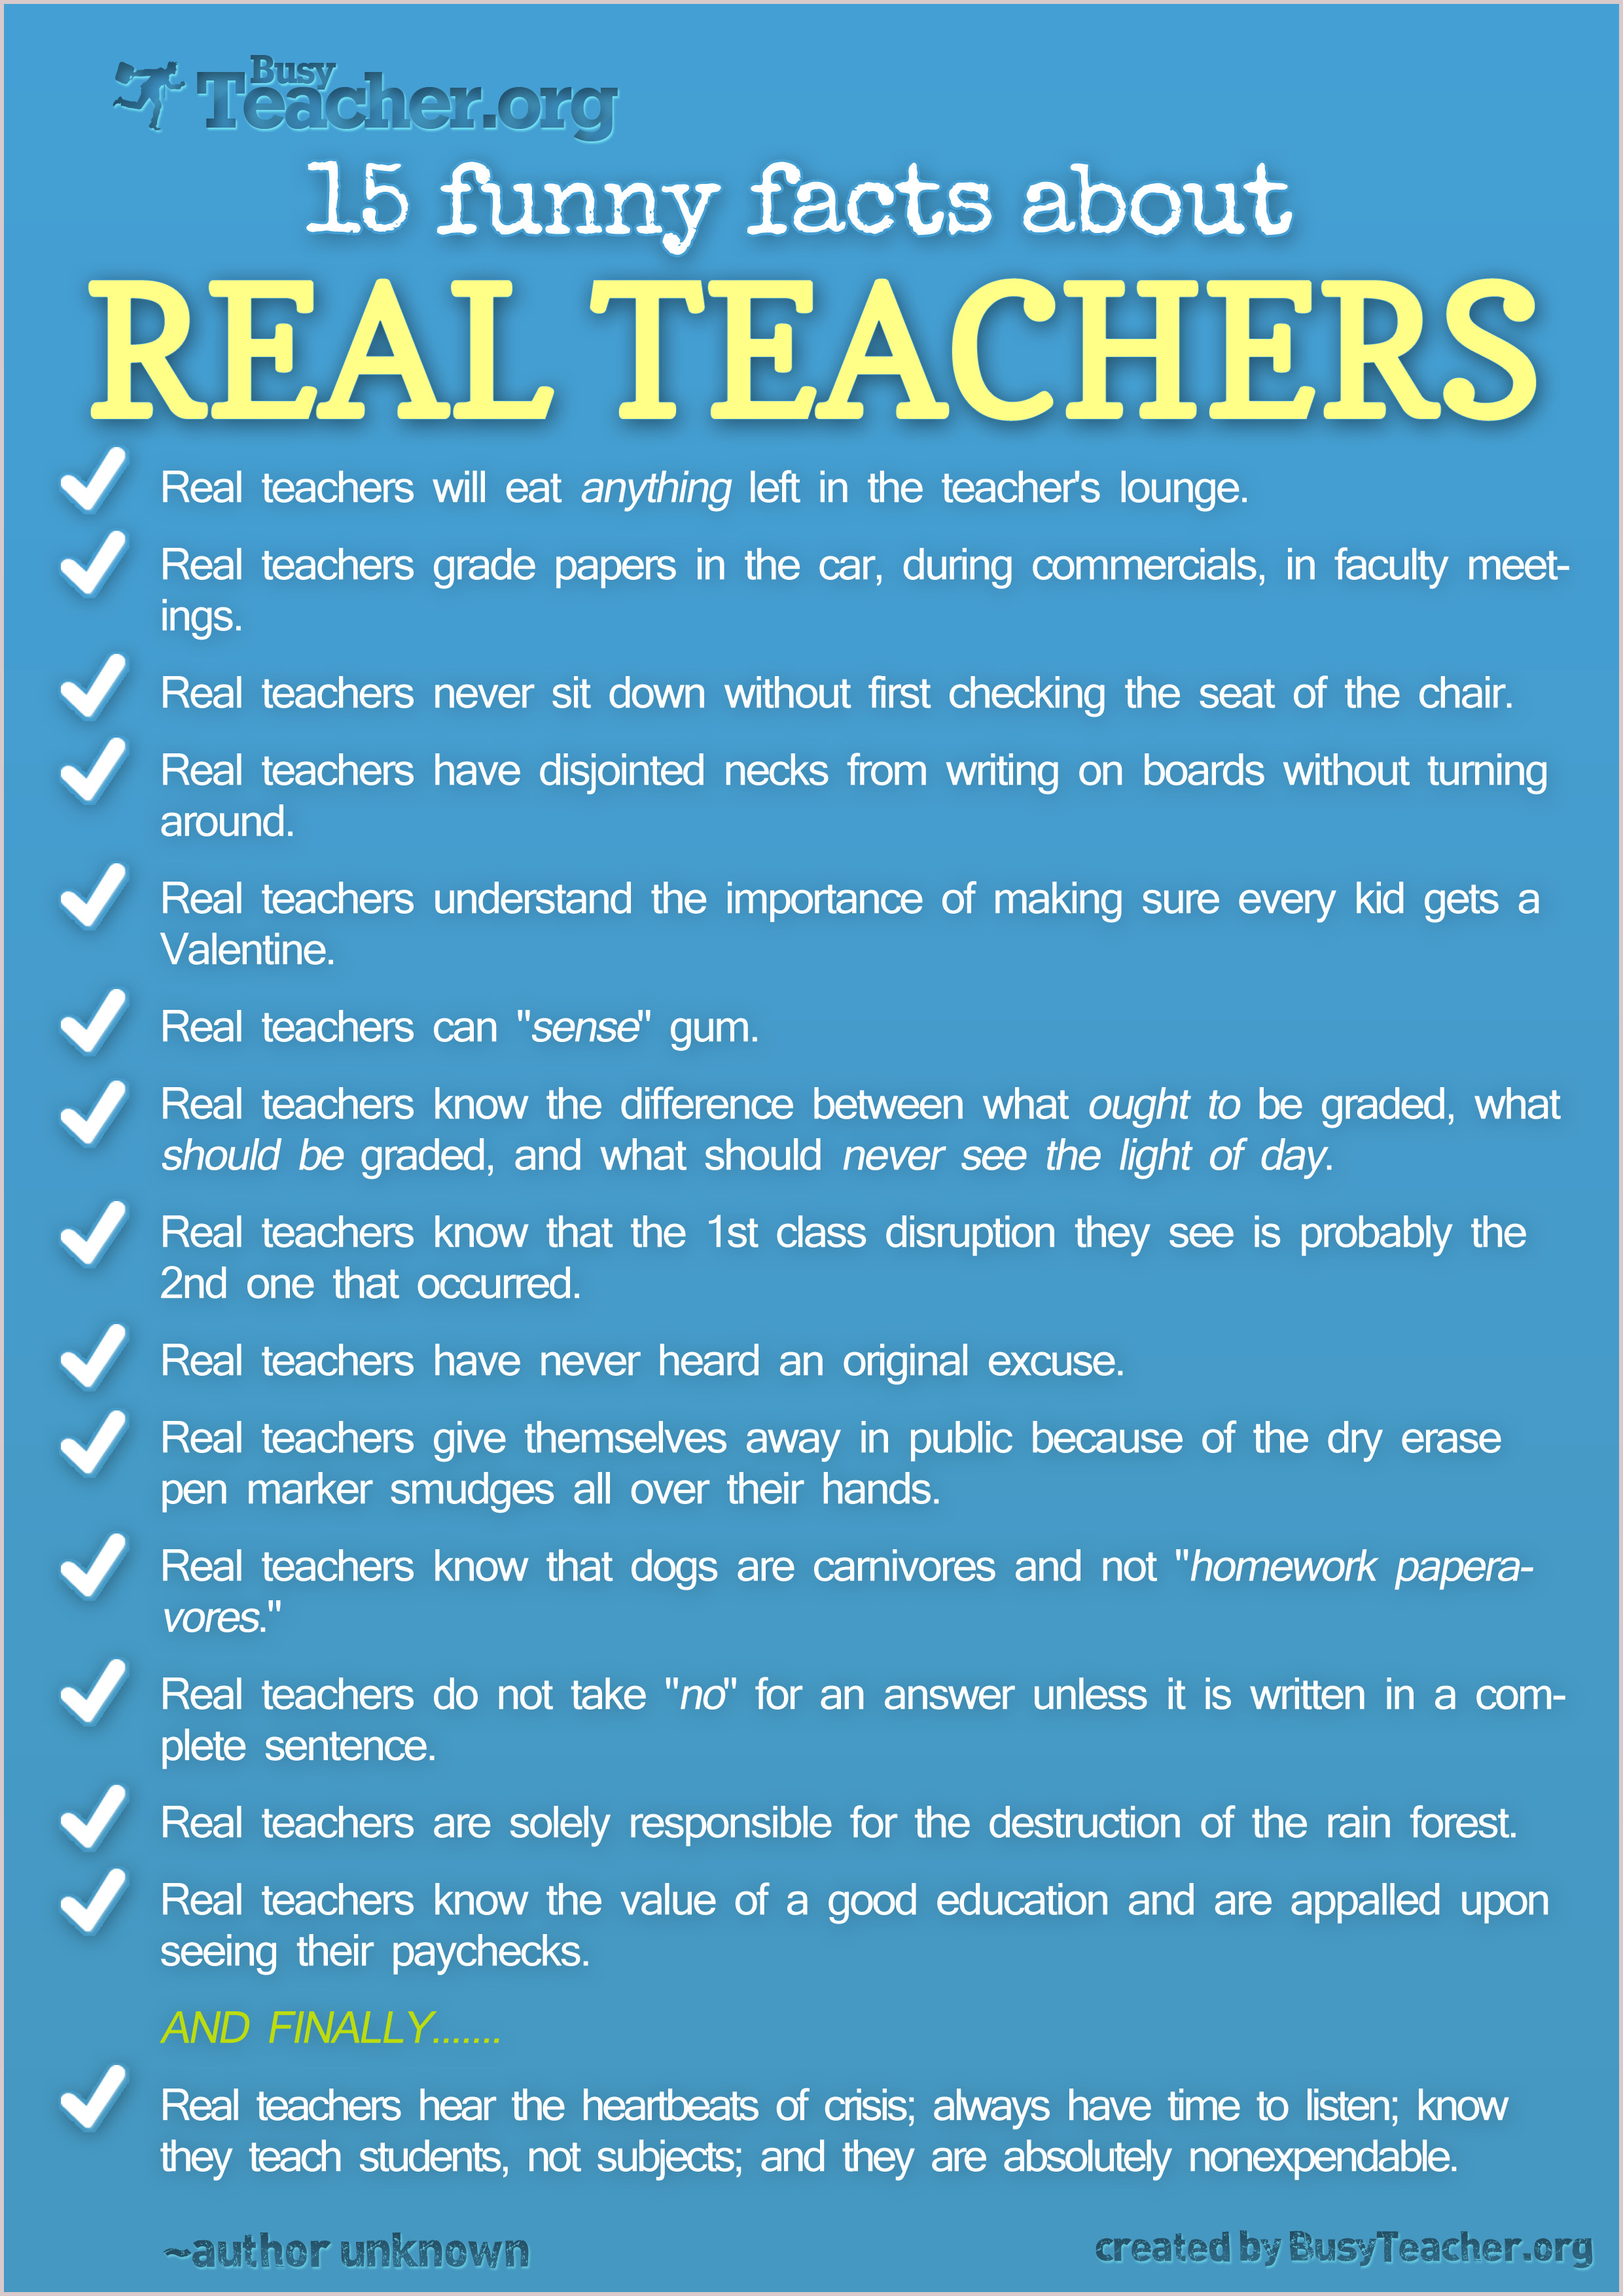 POSTER: 15 Funny Facts About Real Teachers